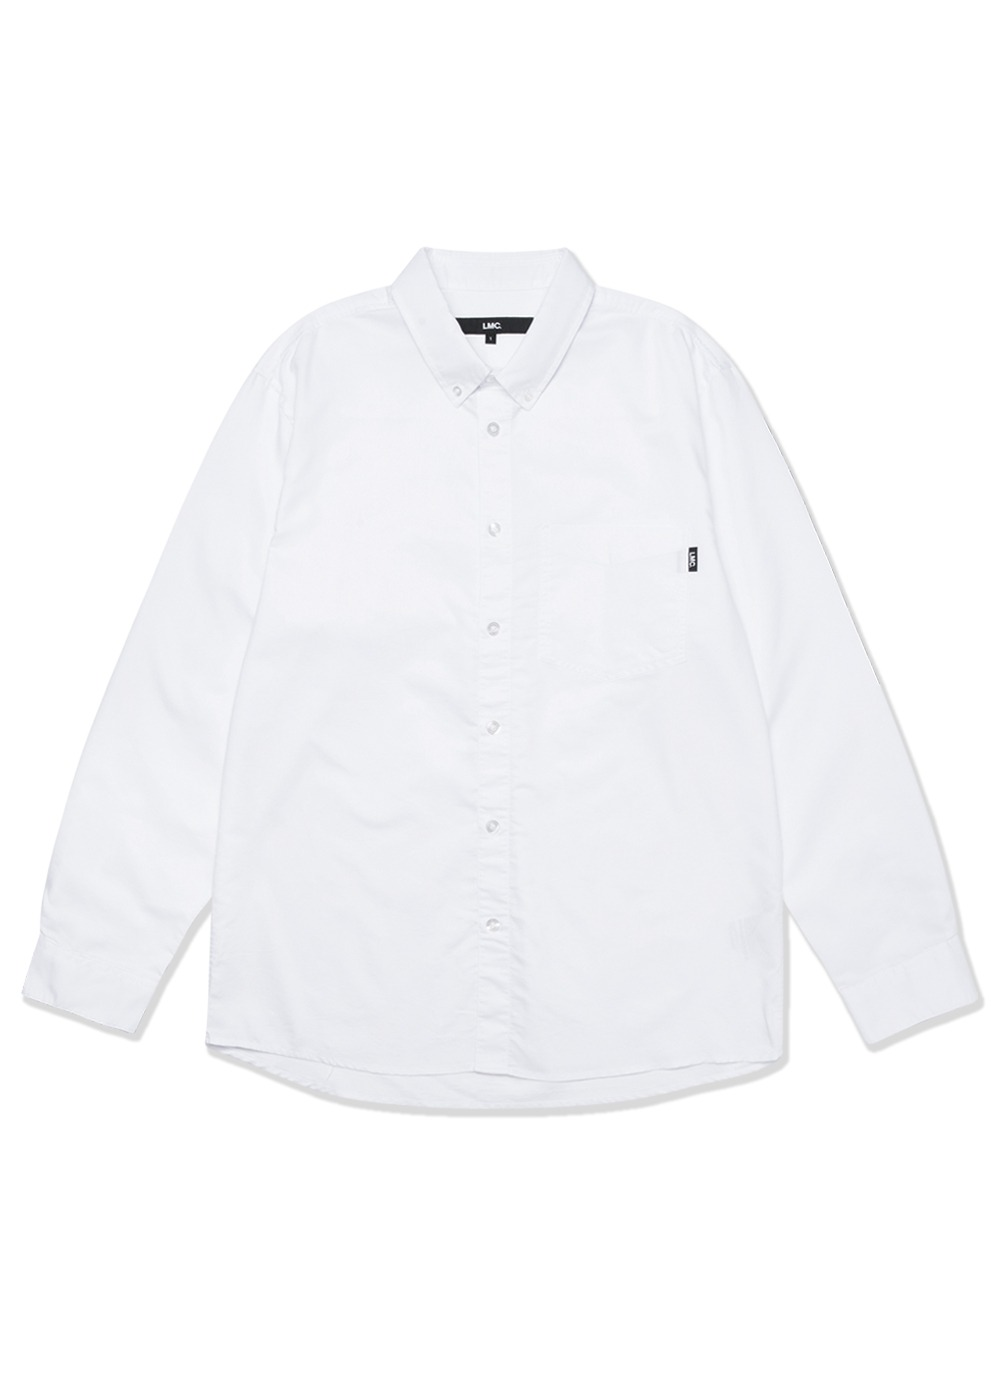 LMC OXFORD BASIC SHIRT white